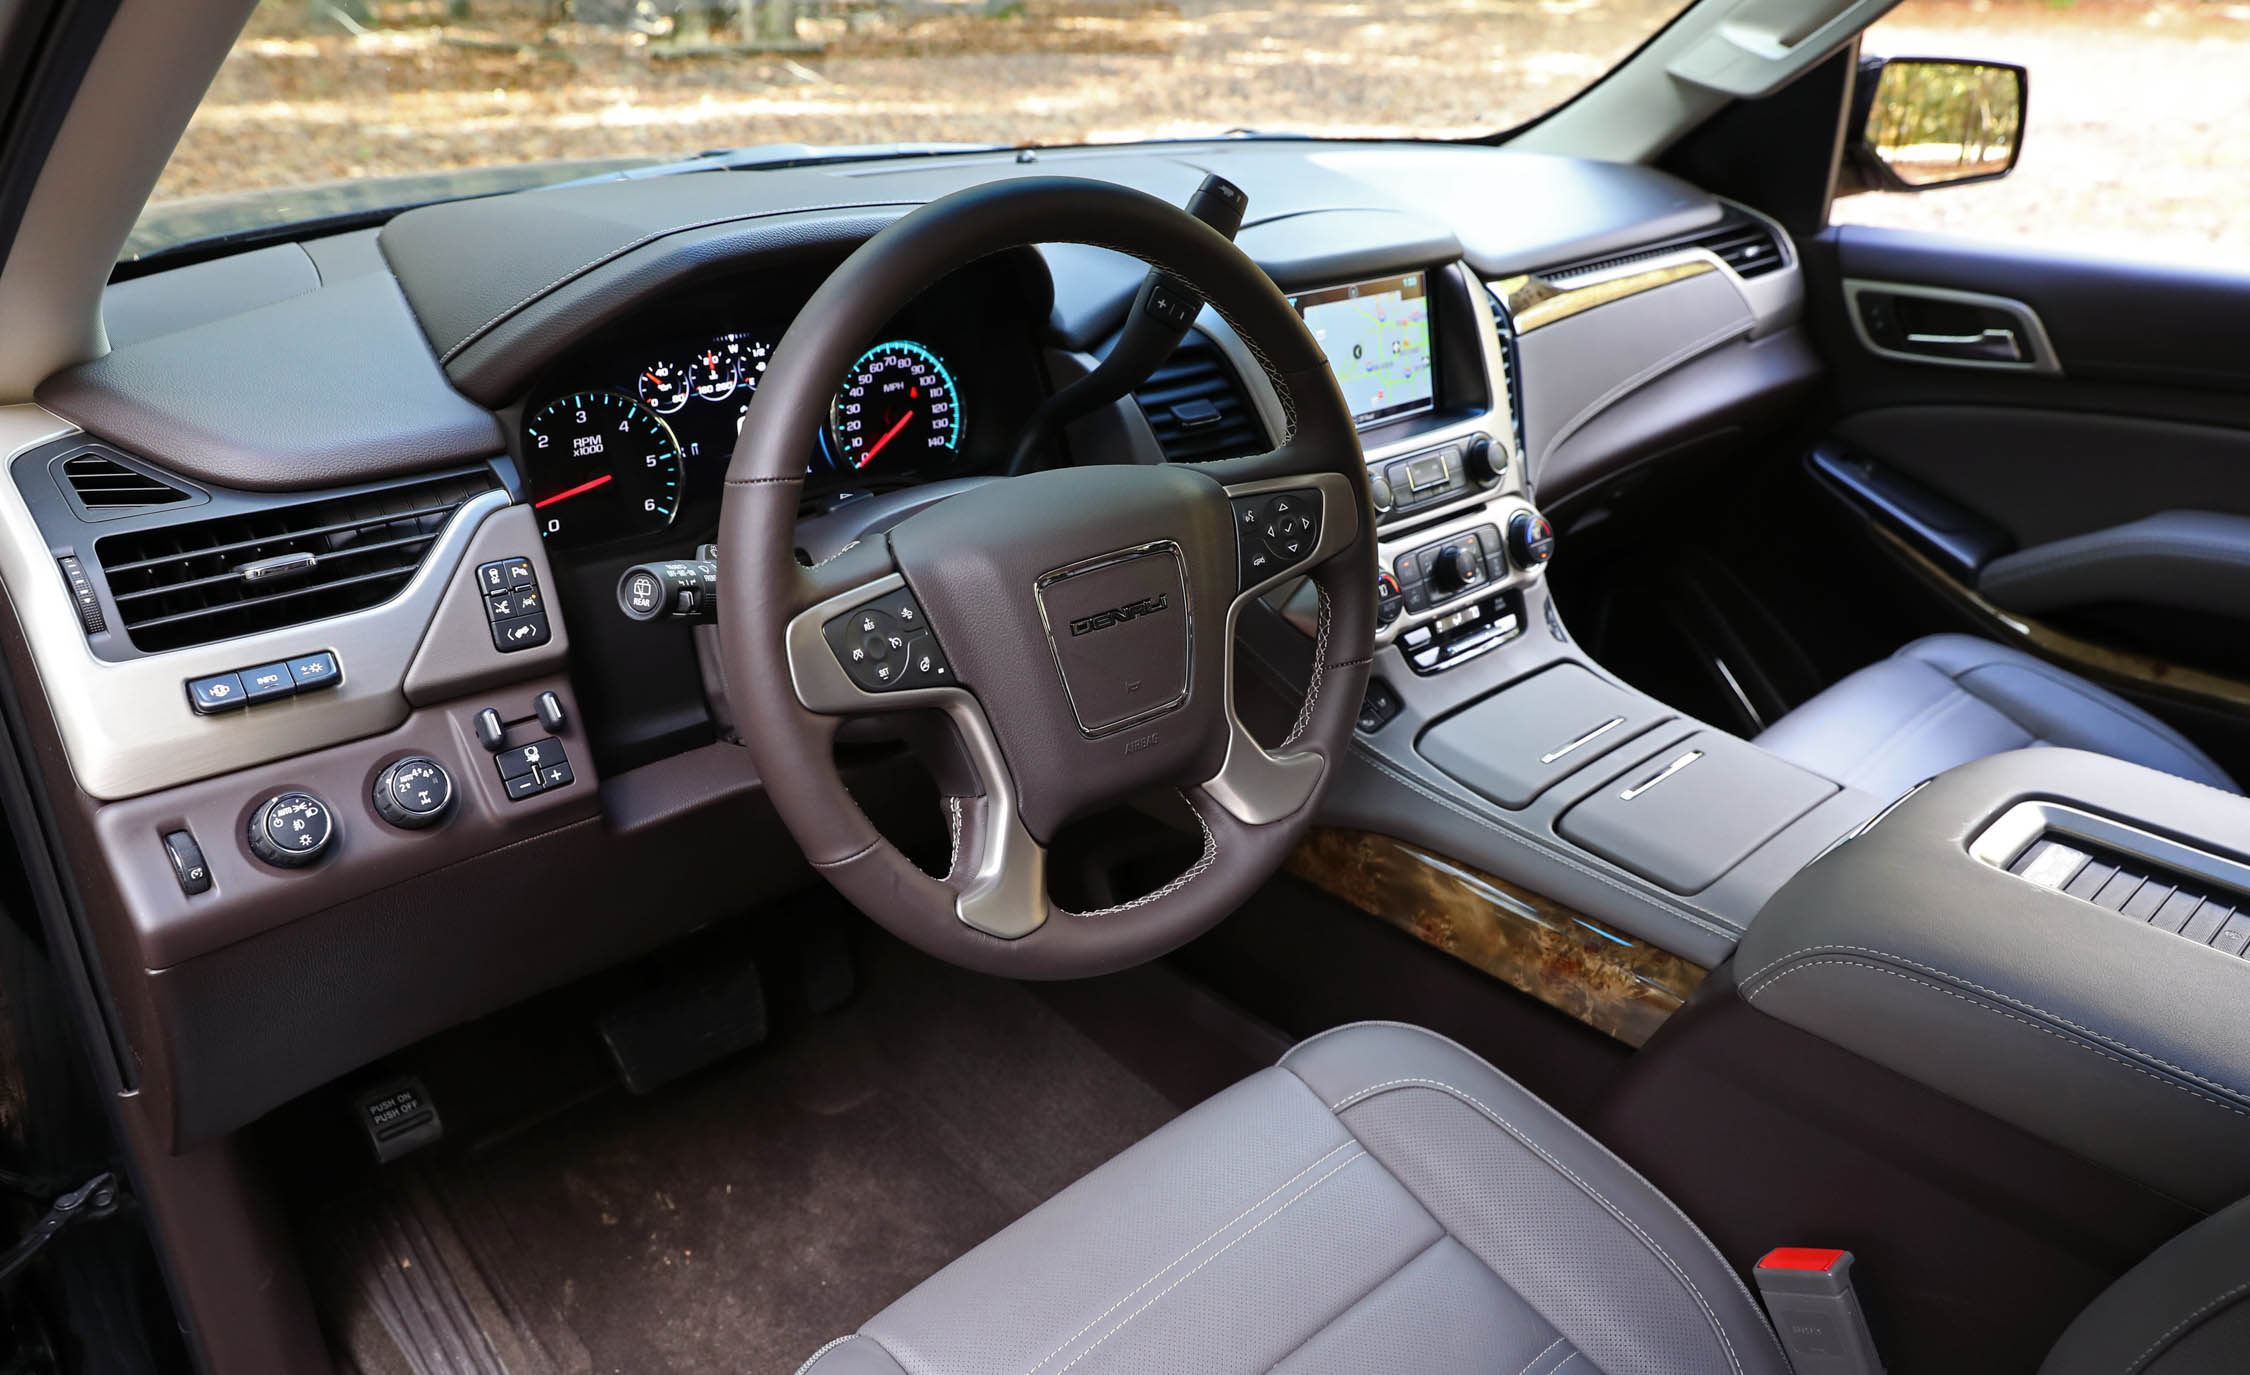 2017 Gmc Yukon Xl Denali Interior View Cockpit Steering (Photo 22 of 26)